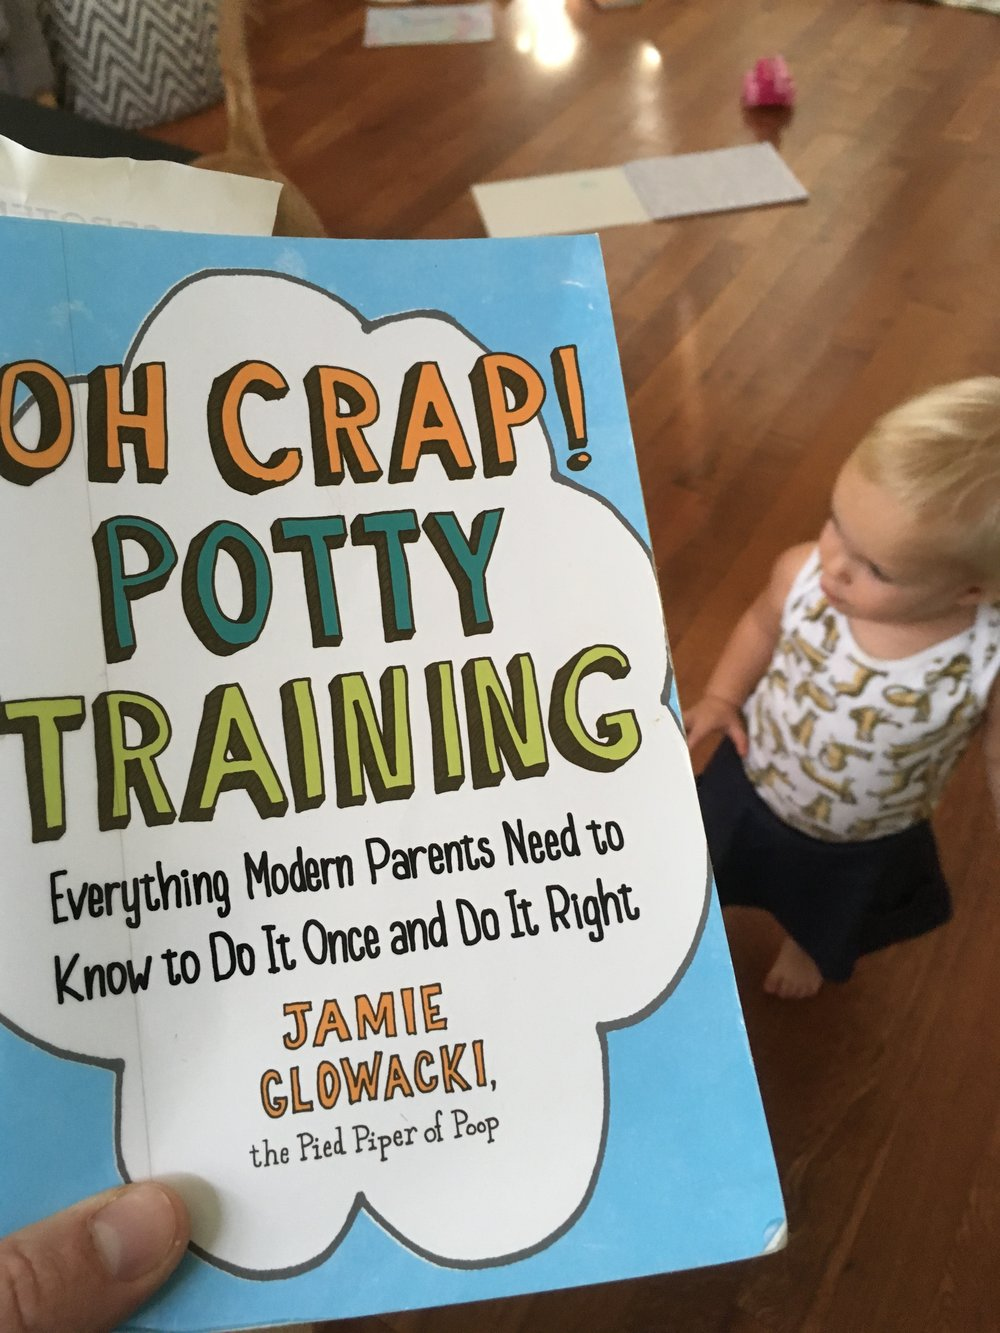 The most practical book I read this year, except that potty training still made me want to tear my hair out. But we made it through!!